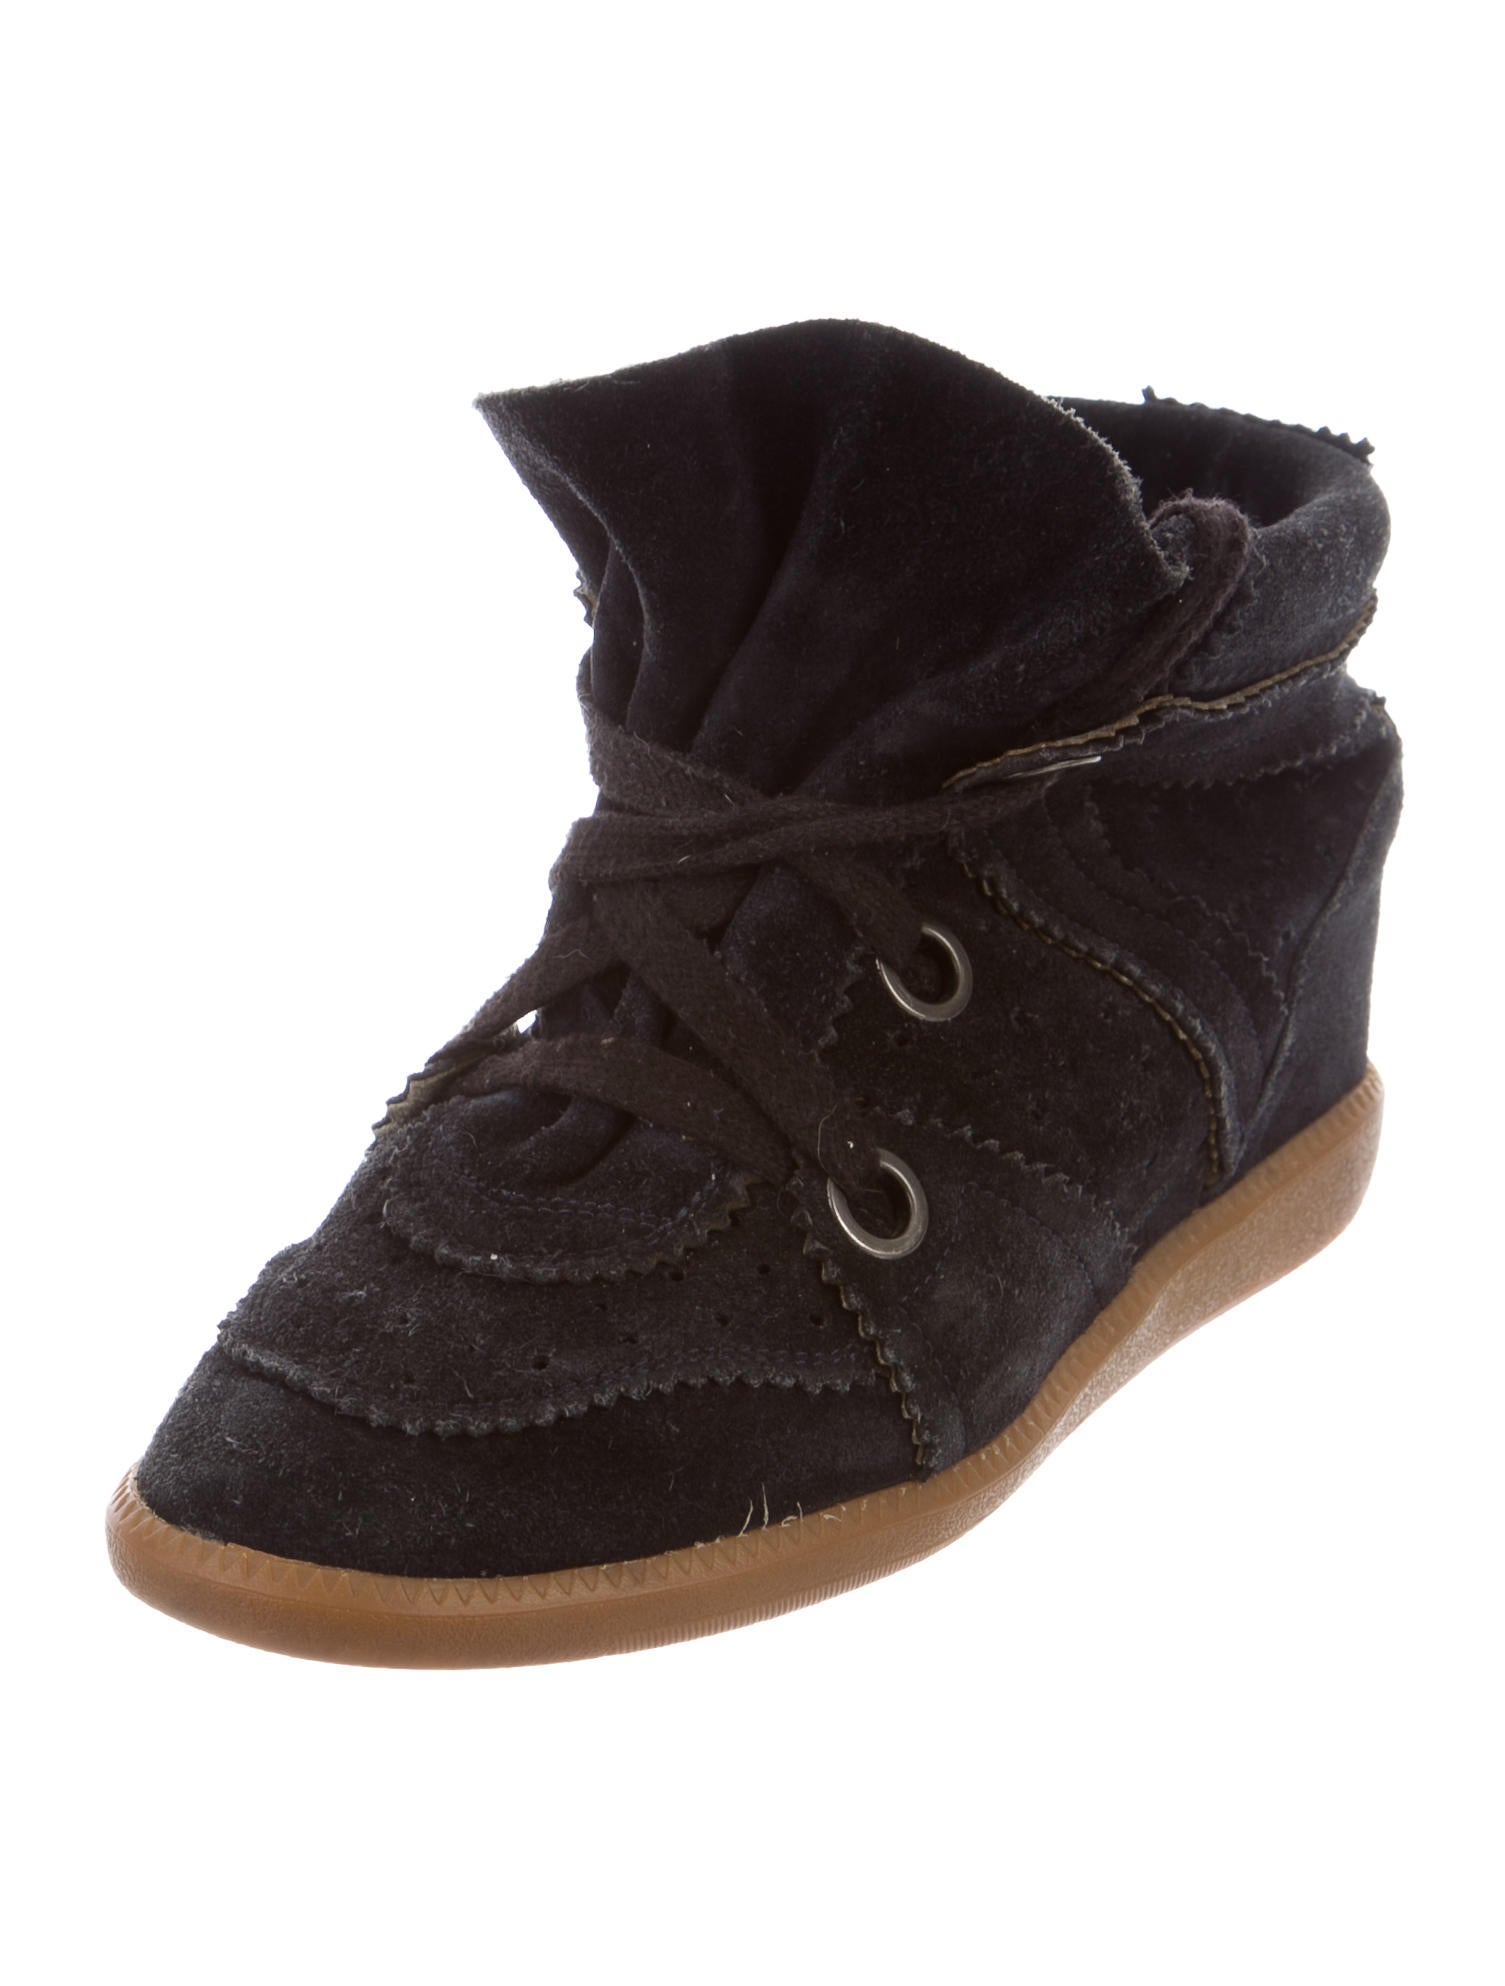 eae97111fa6 ... Isabel Marant Sneakers you purchase are rainproof and own excellent  golf club grip. This 'll preserve children dry plus warm the following most  setting ...